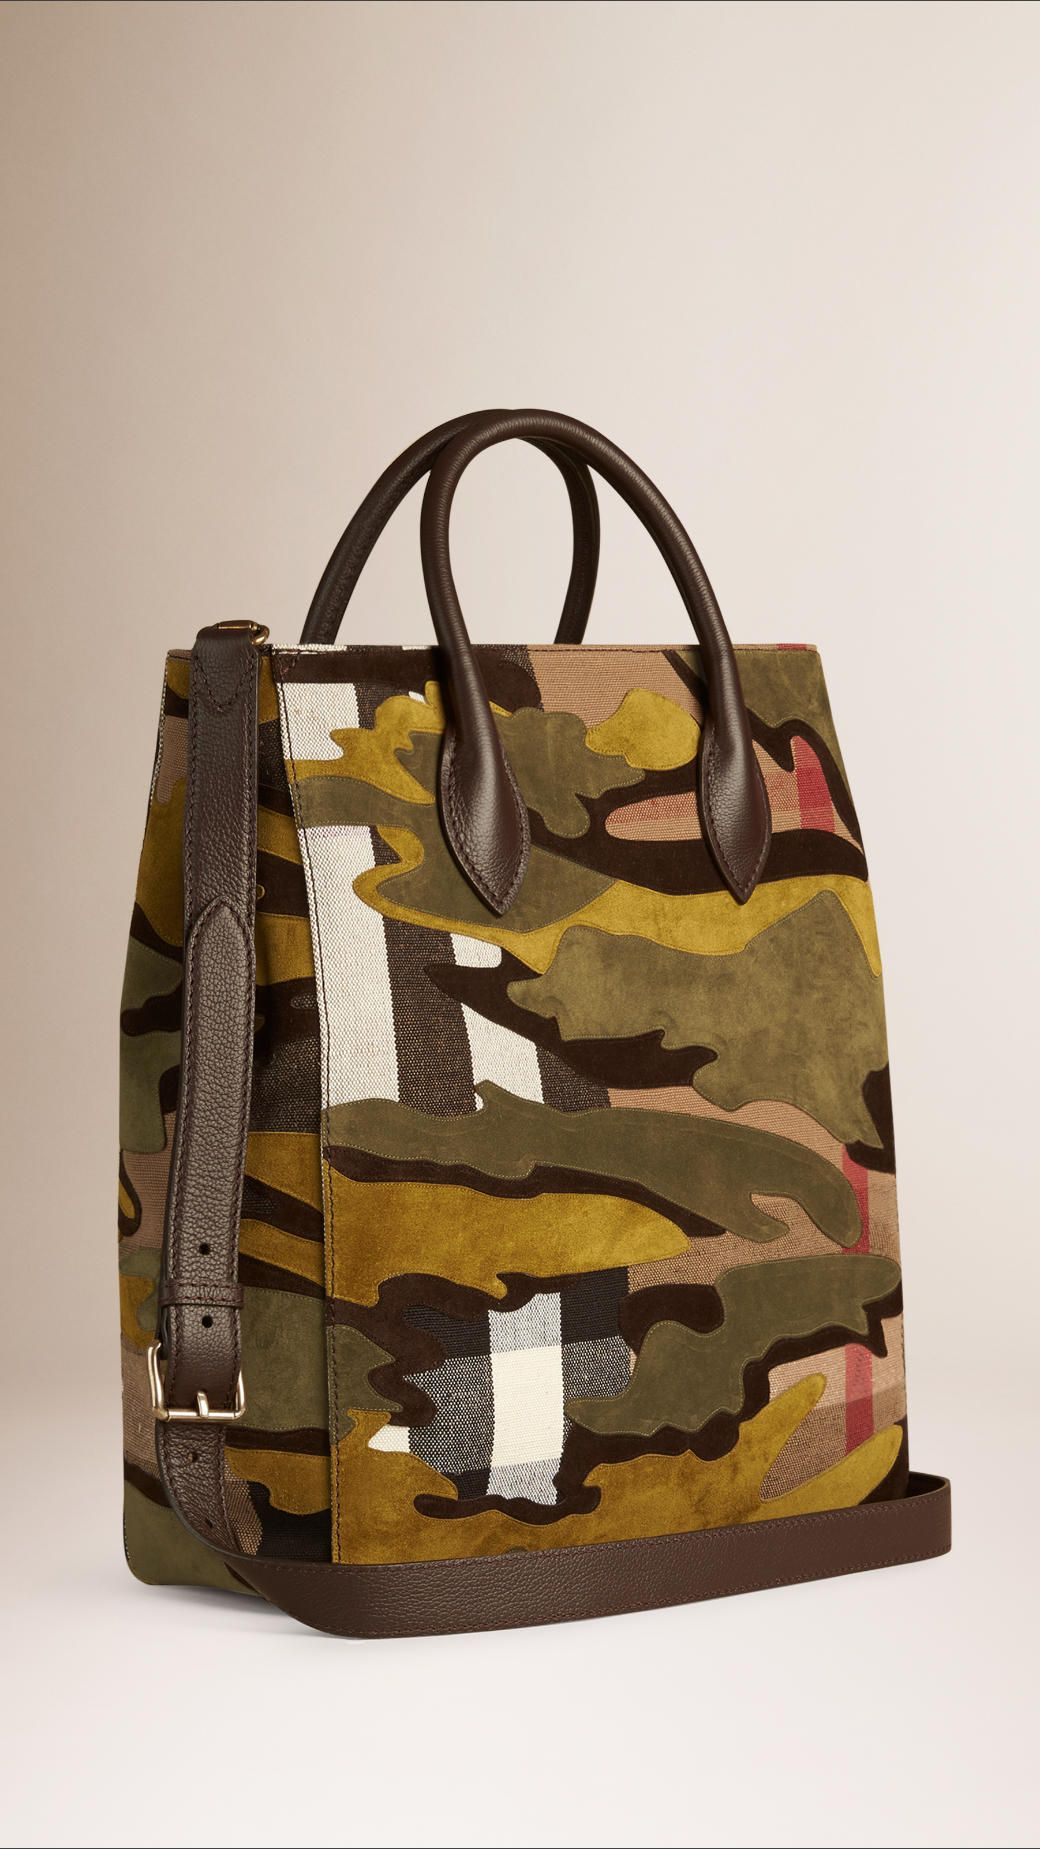 cdfd92b3d533 Burberry   An open-top tote bag crafted from Canvas check with a bonded  suede camouflage pattern. The structured design features rolled handles